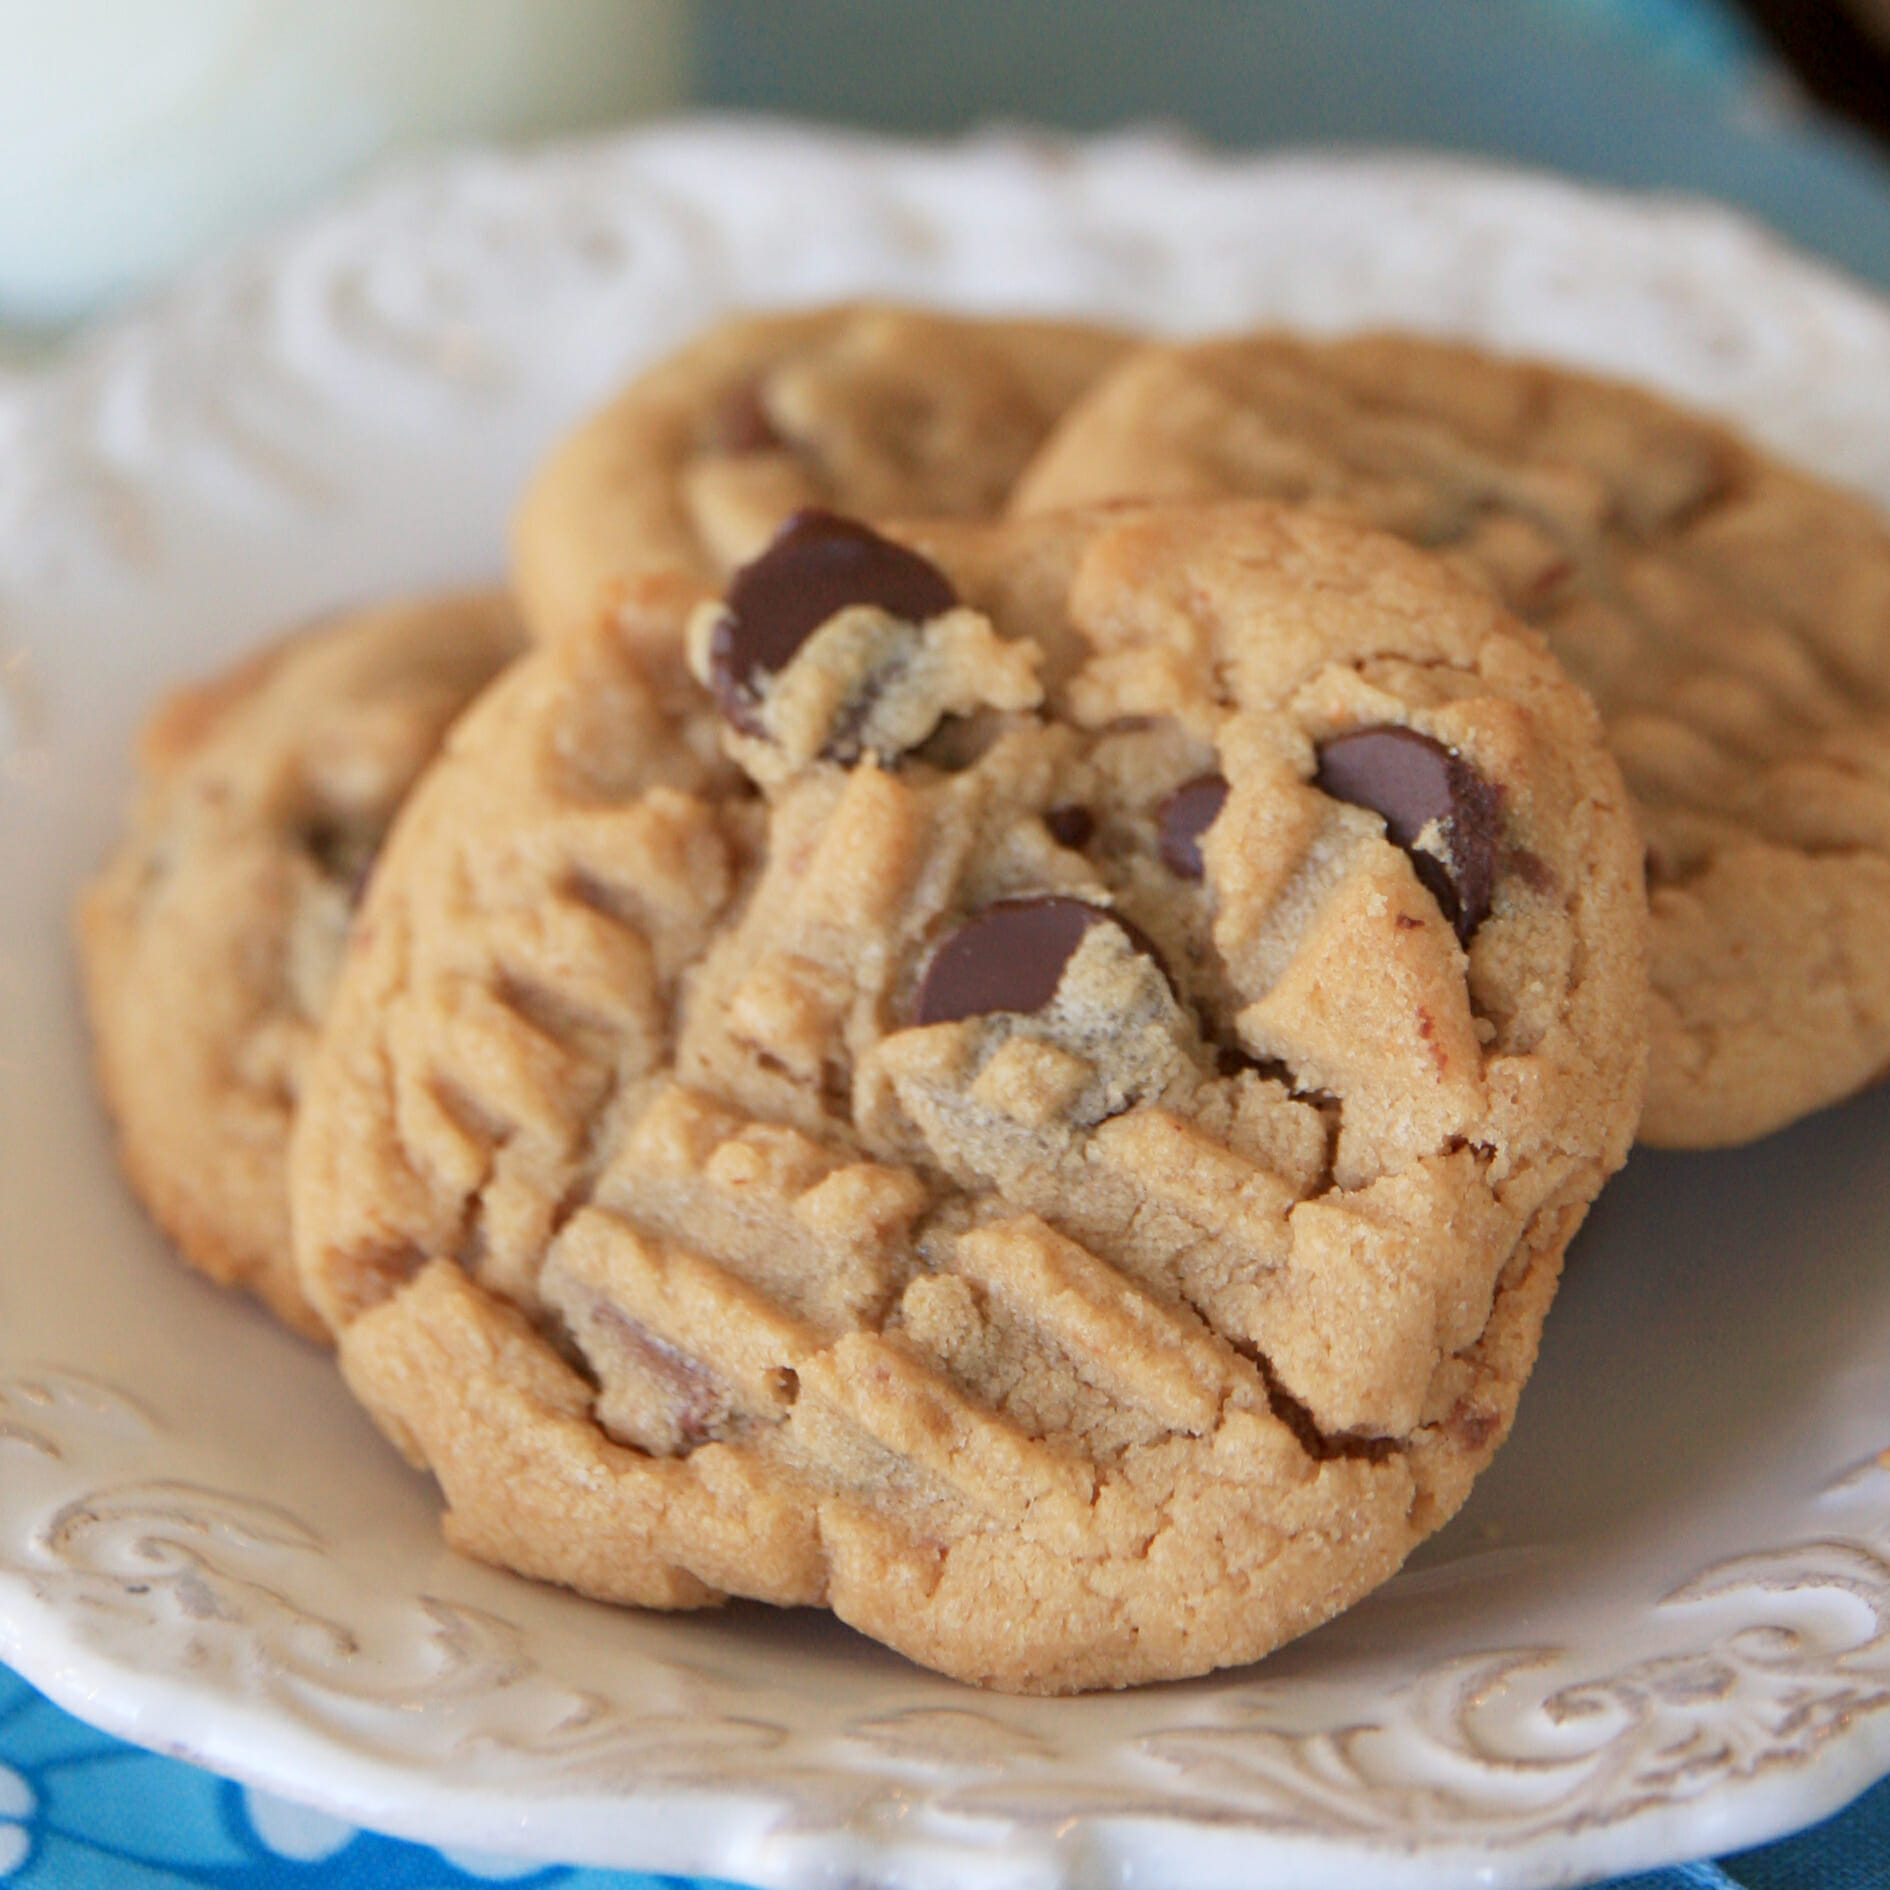 Peanut-Butter-Chocolate-Chip-Cookies-sq.jpg